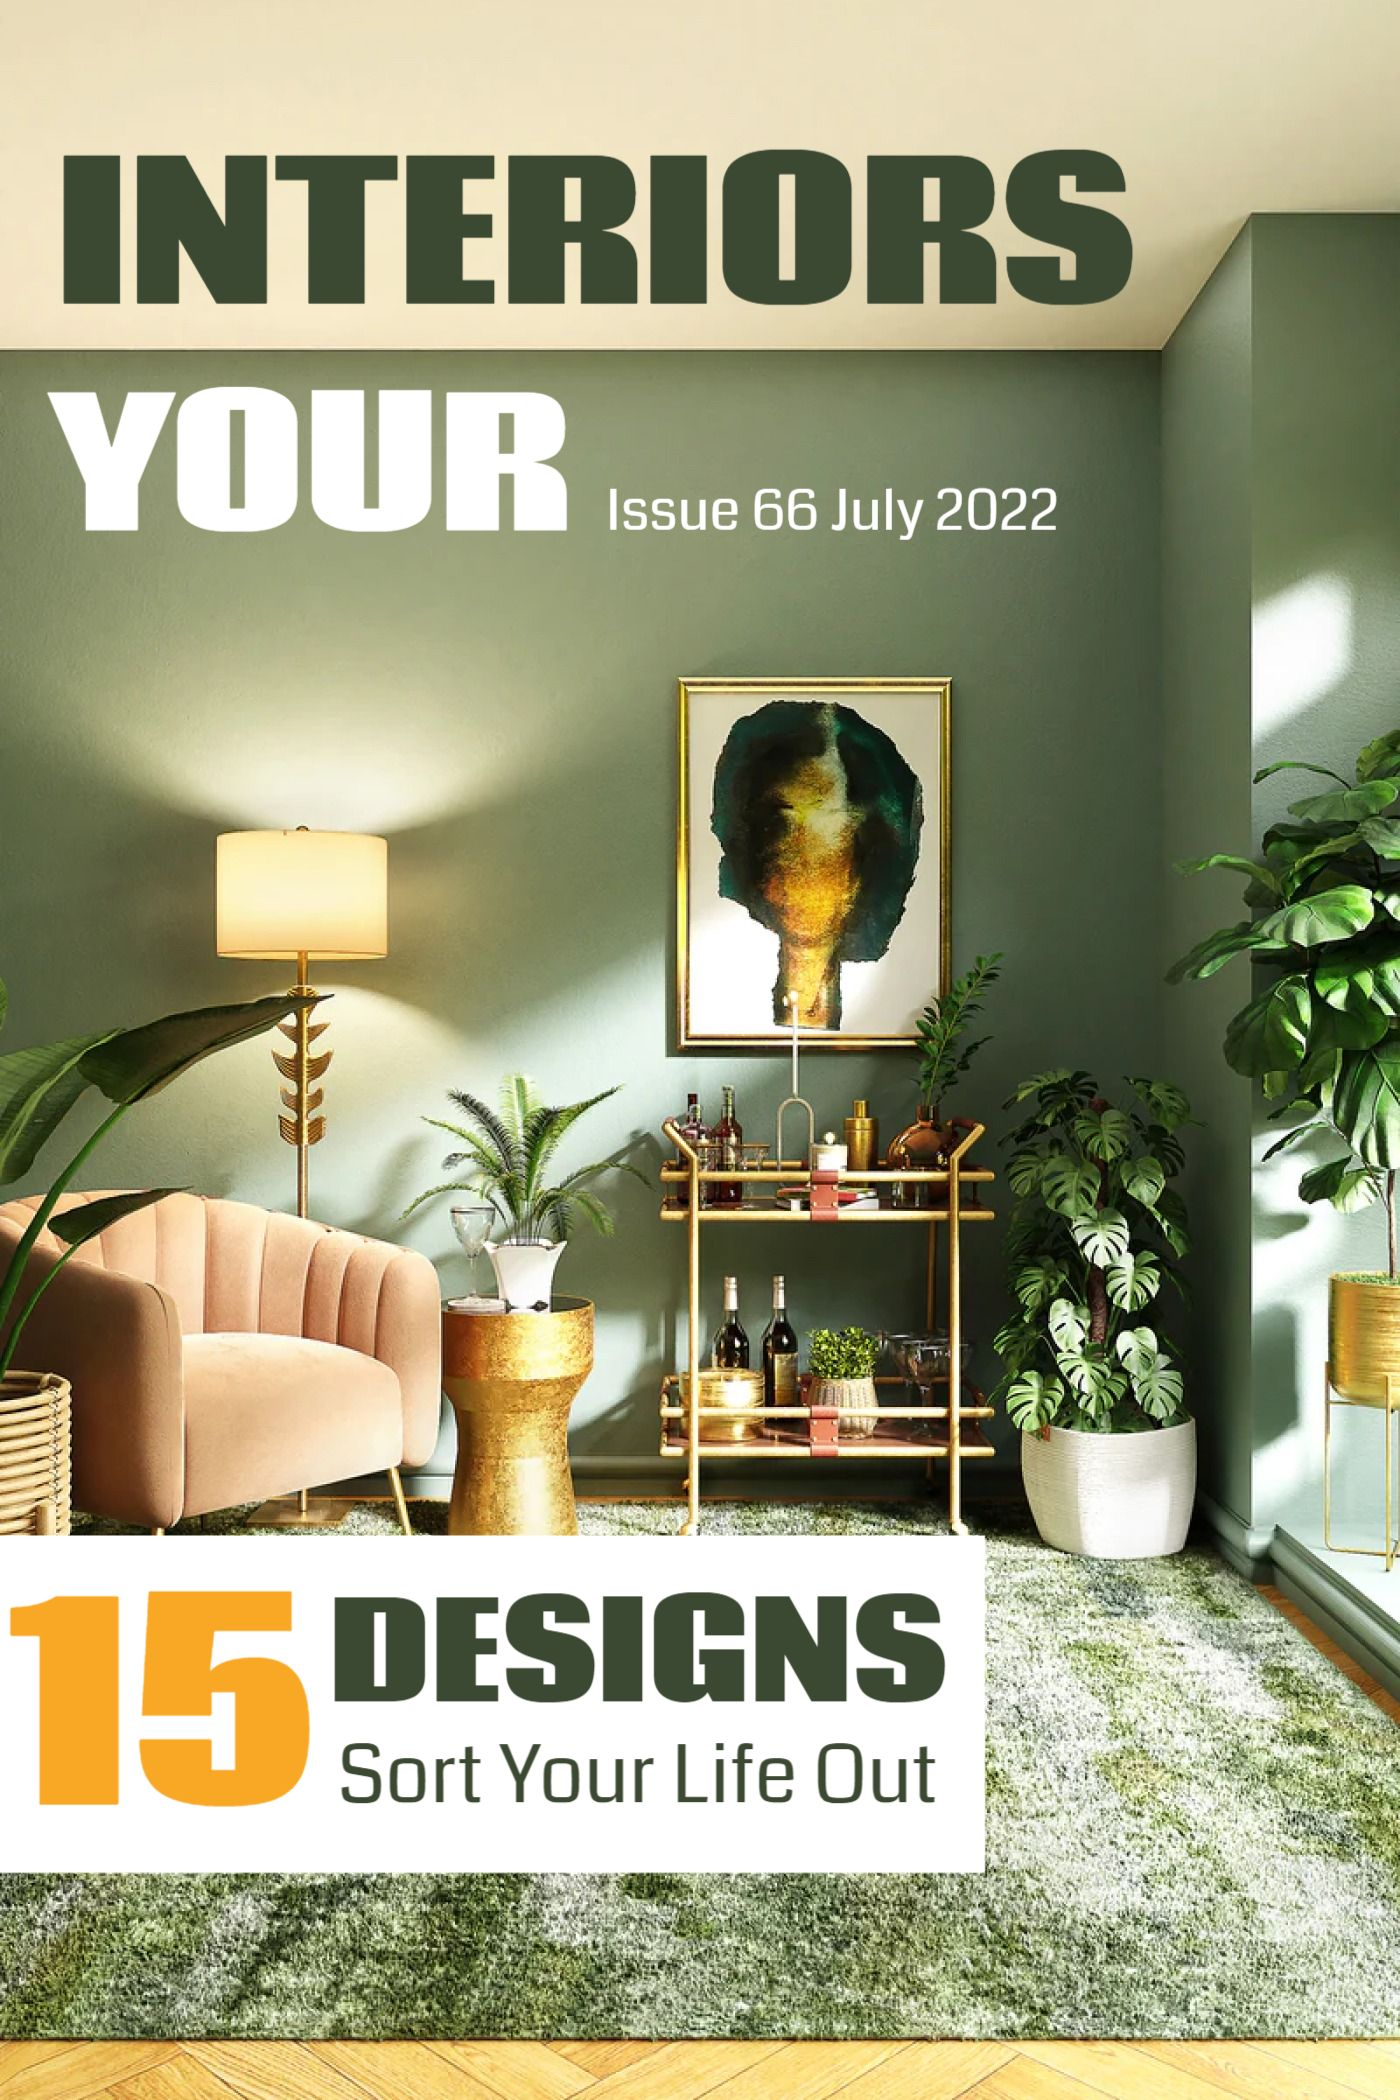 Your Interiors Magazine Cover Template